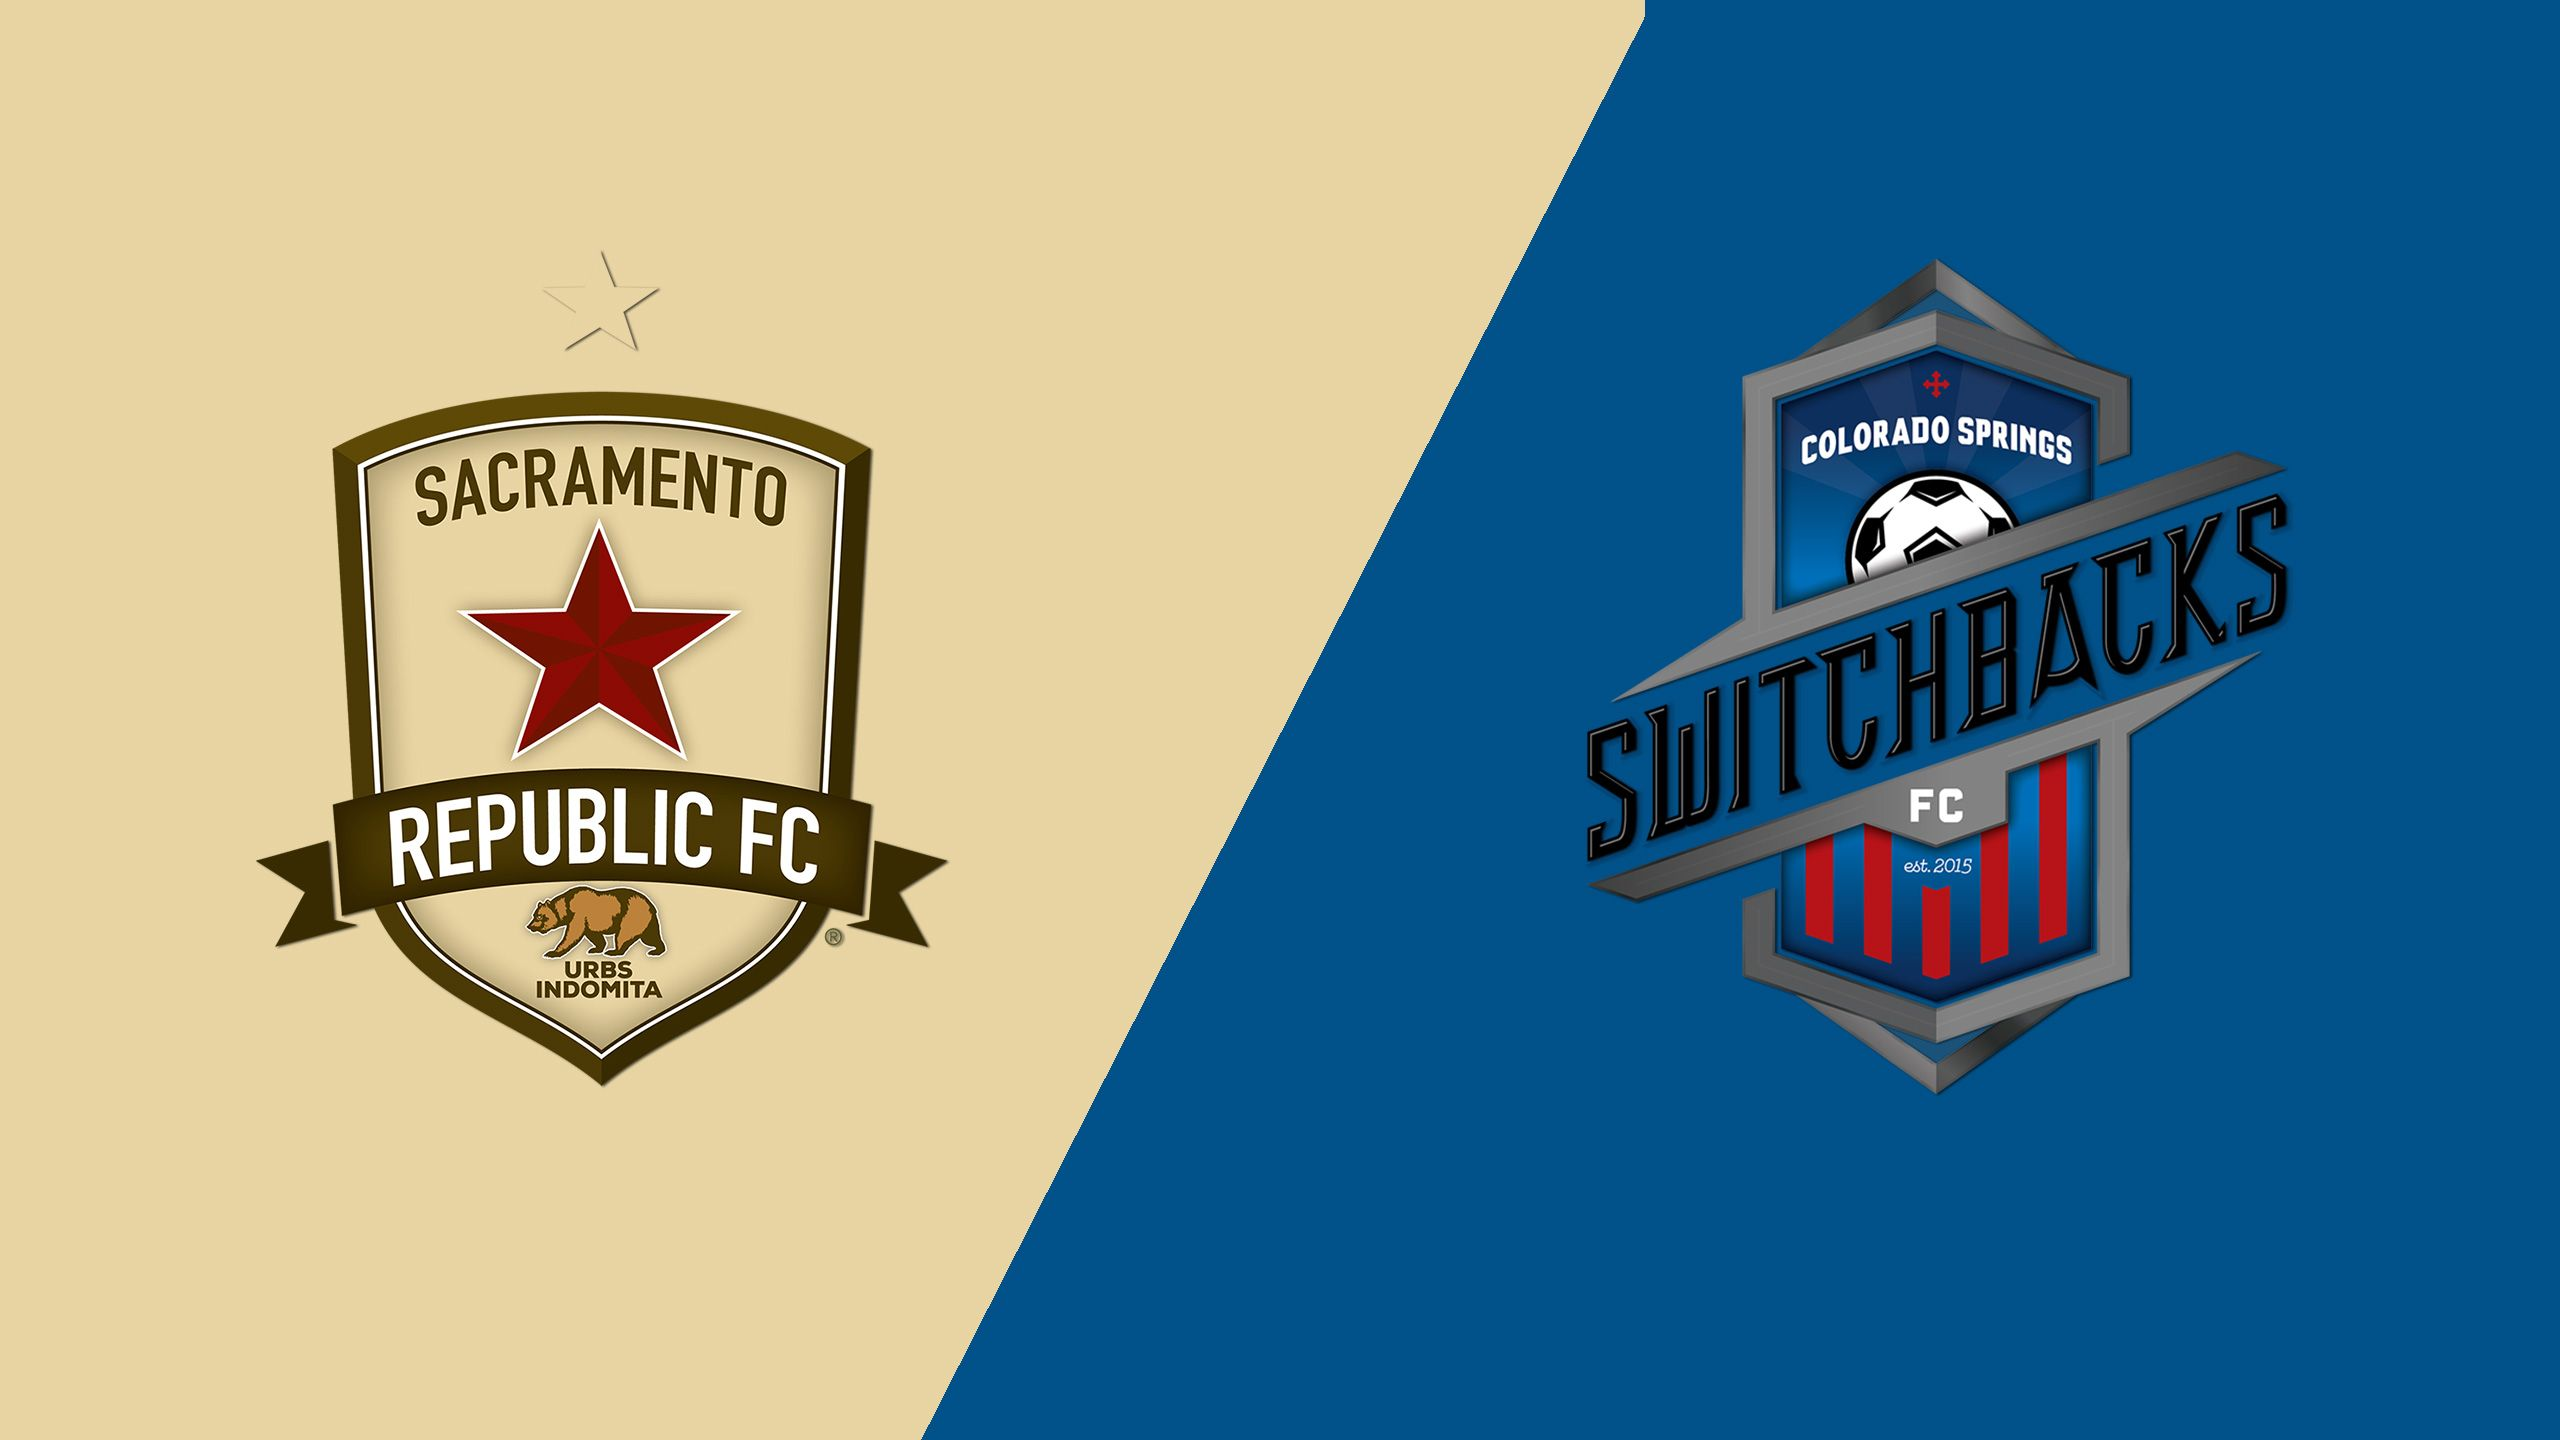 Sacramento Republic FC vs. Colorado Springs Switchbacks FC